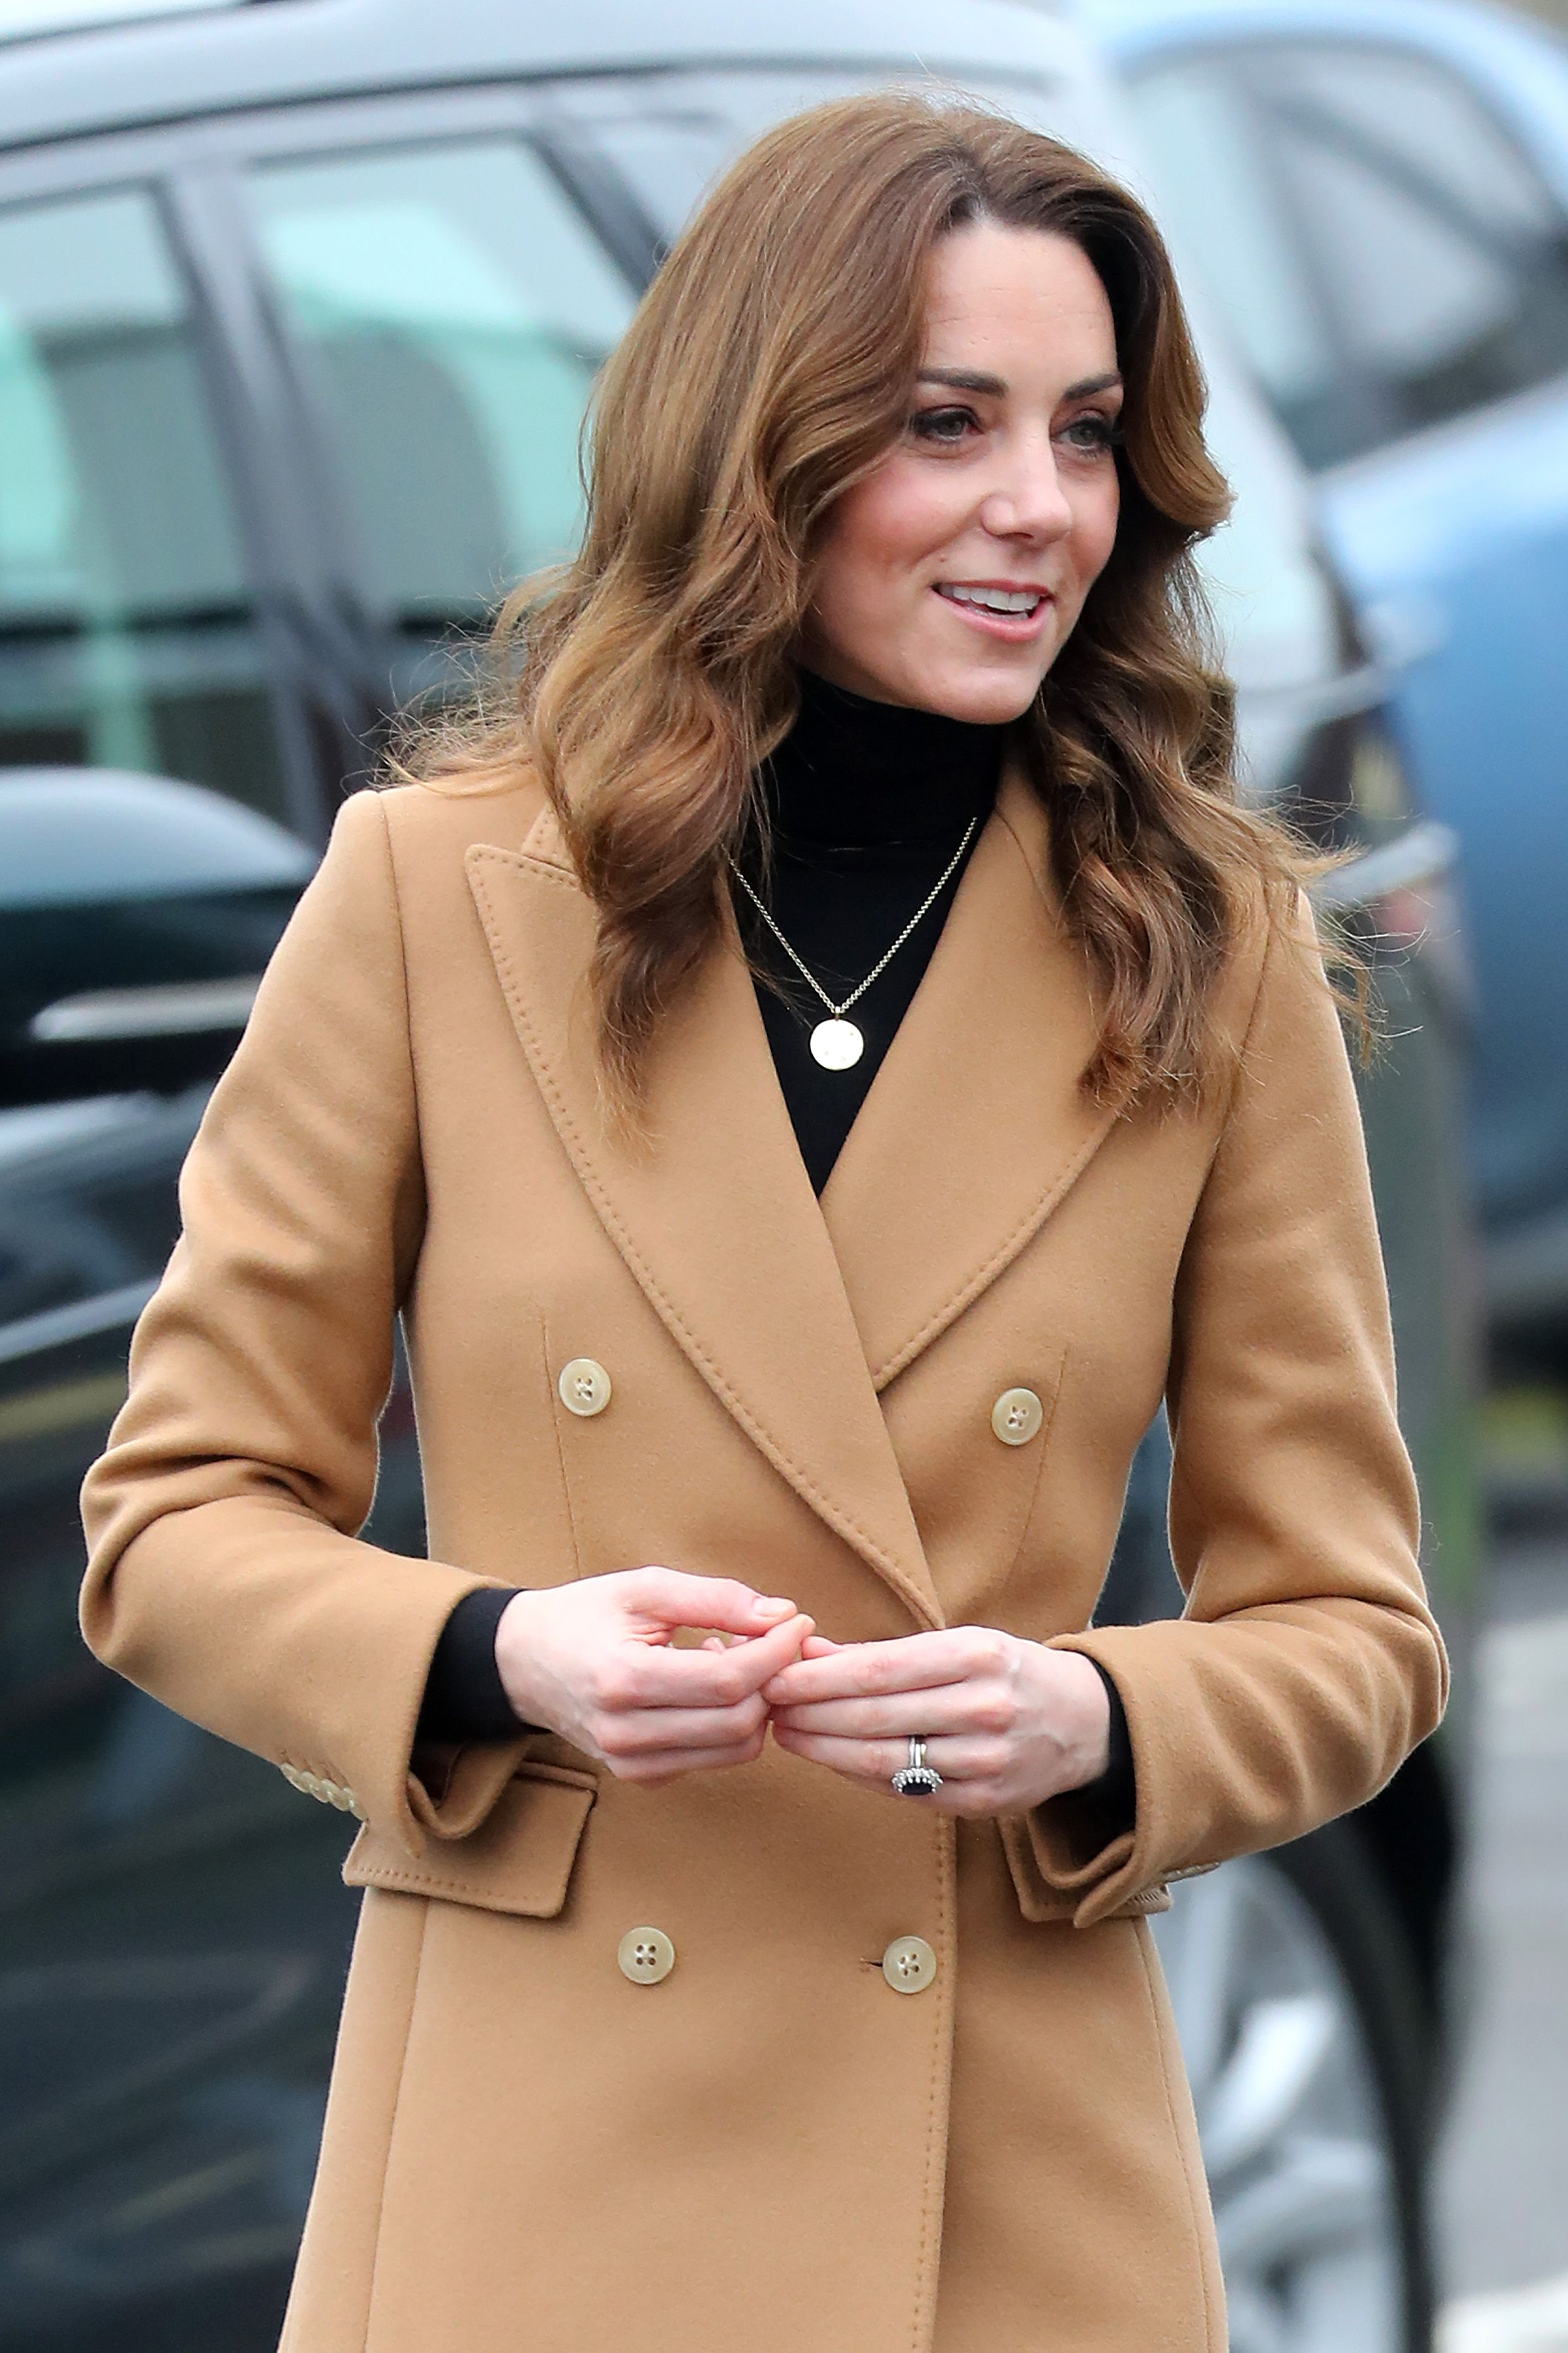 The Duchess of Cambridge steps out in the perfect camel coat